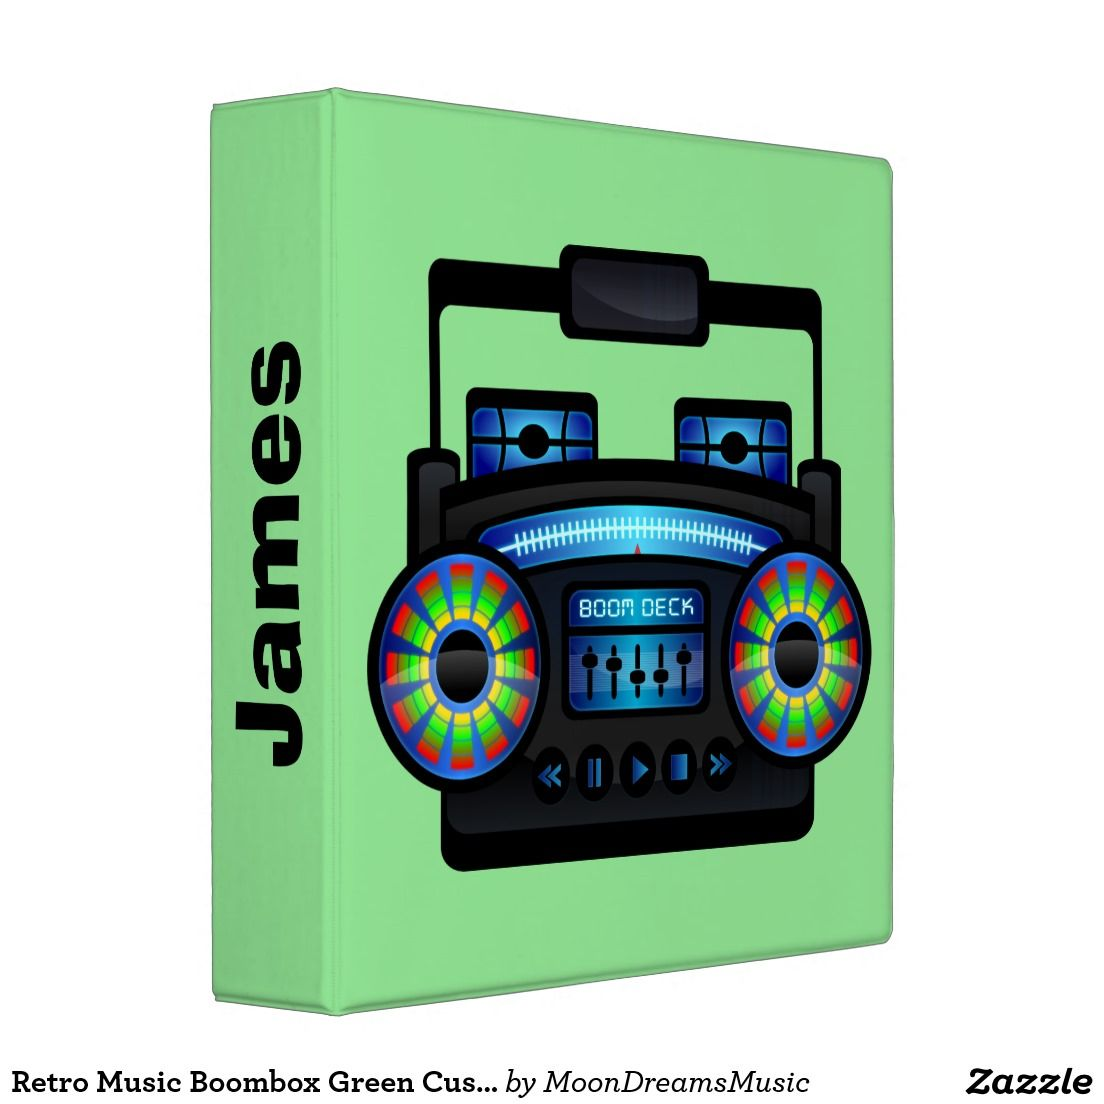 #RetroMusicBoombox #GreenCustomBinder by #MoonDreamsMusic #BackToSchool #SchoolSupplies